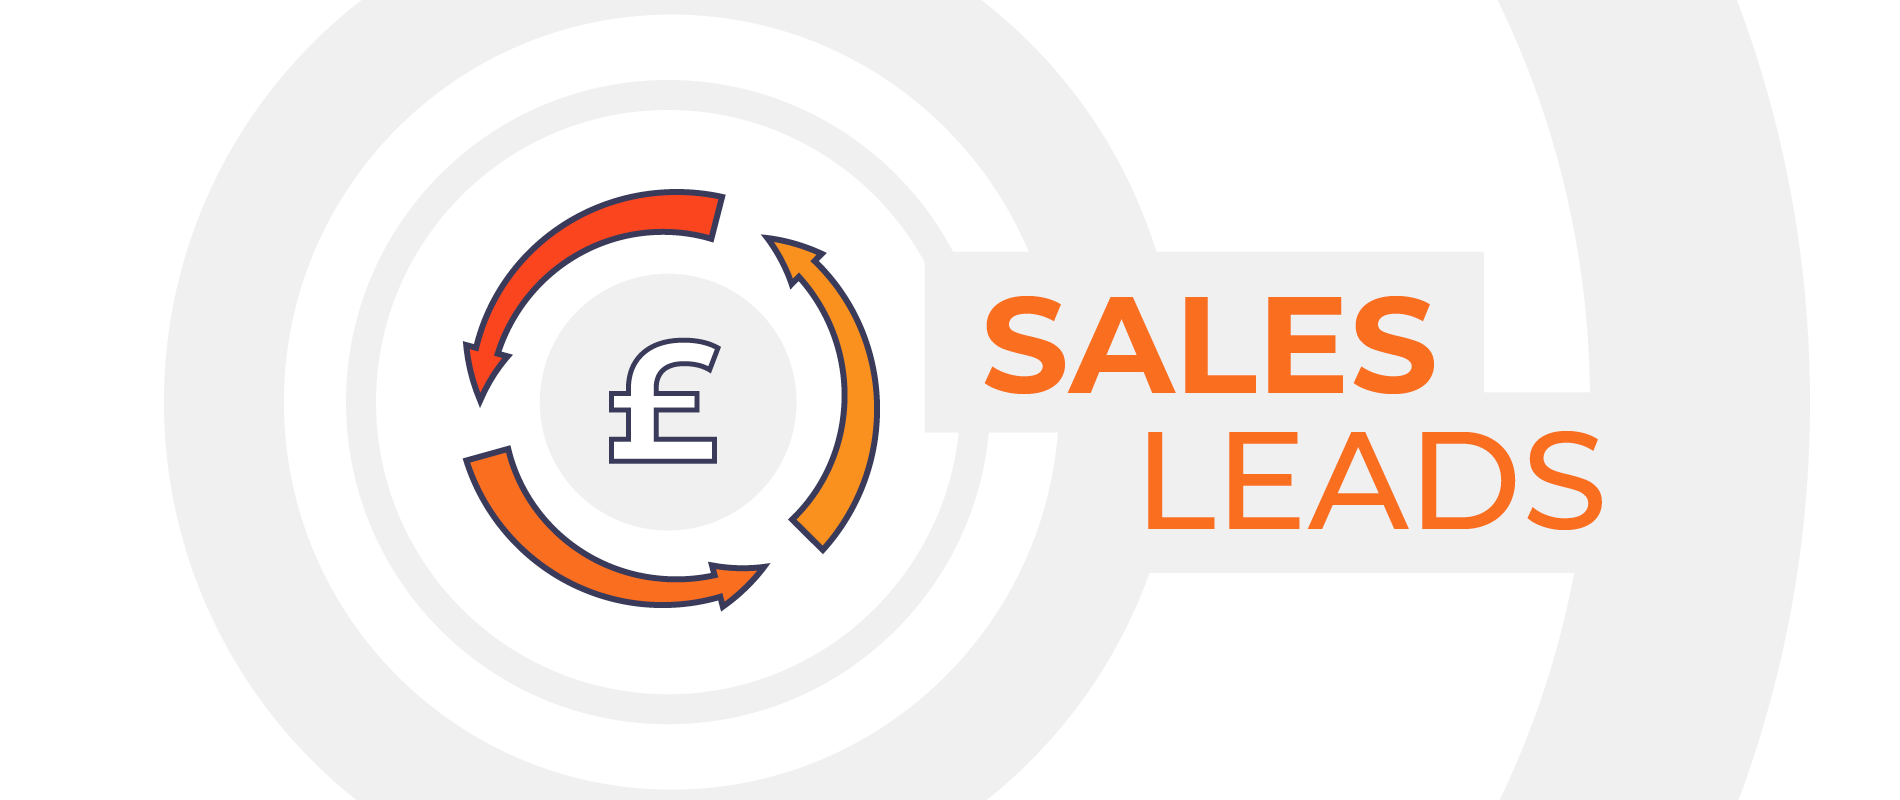 How do you Generate Sales Leads?